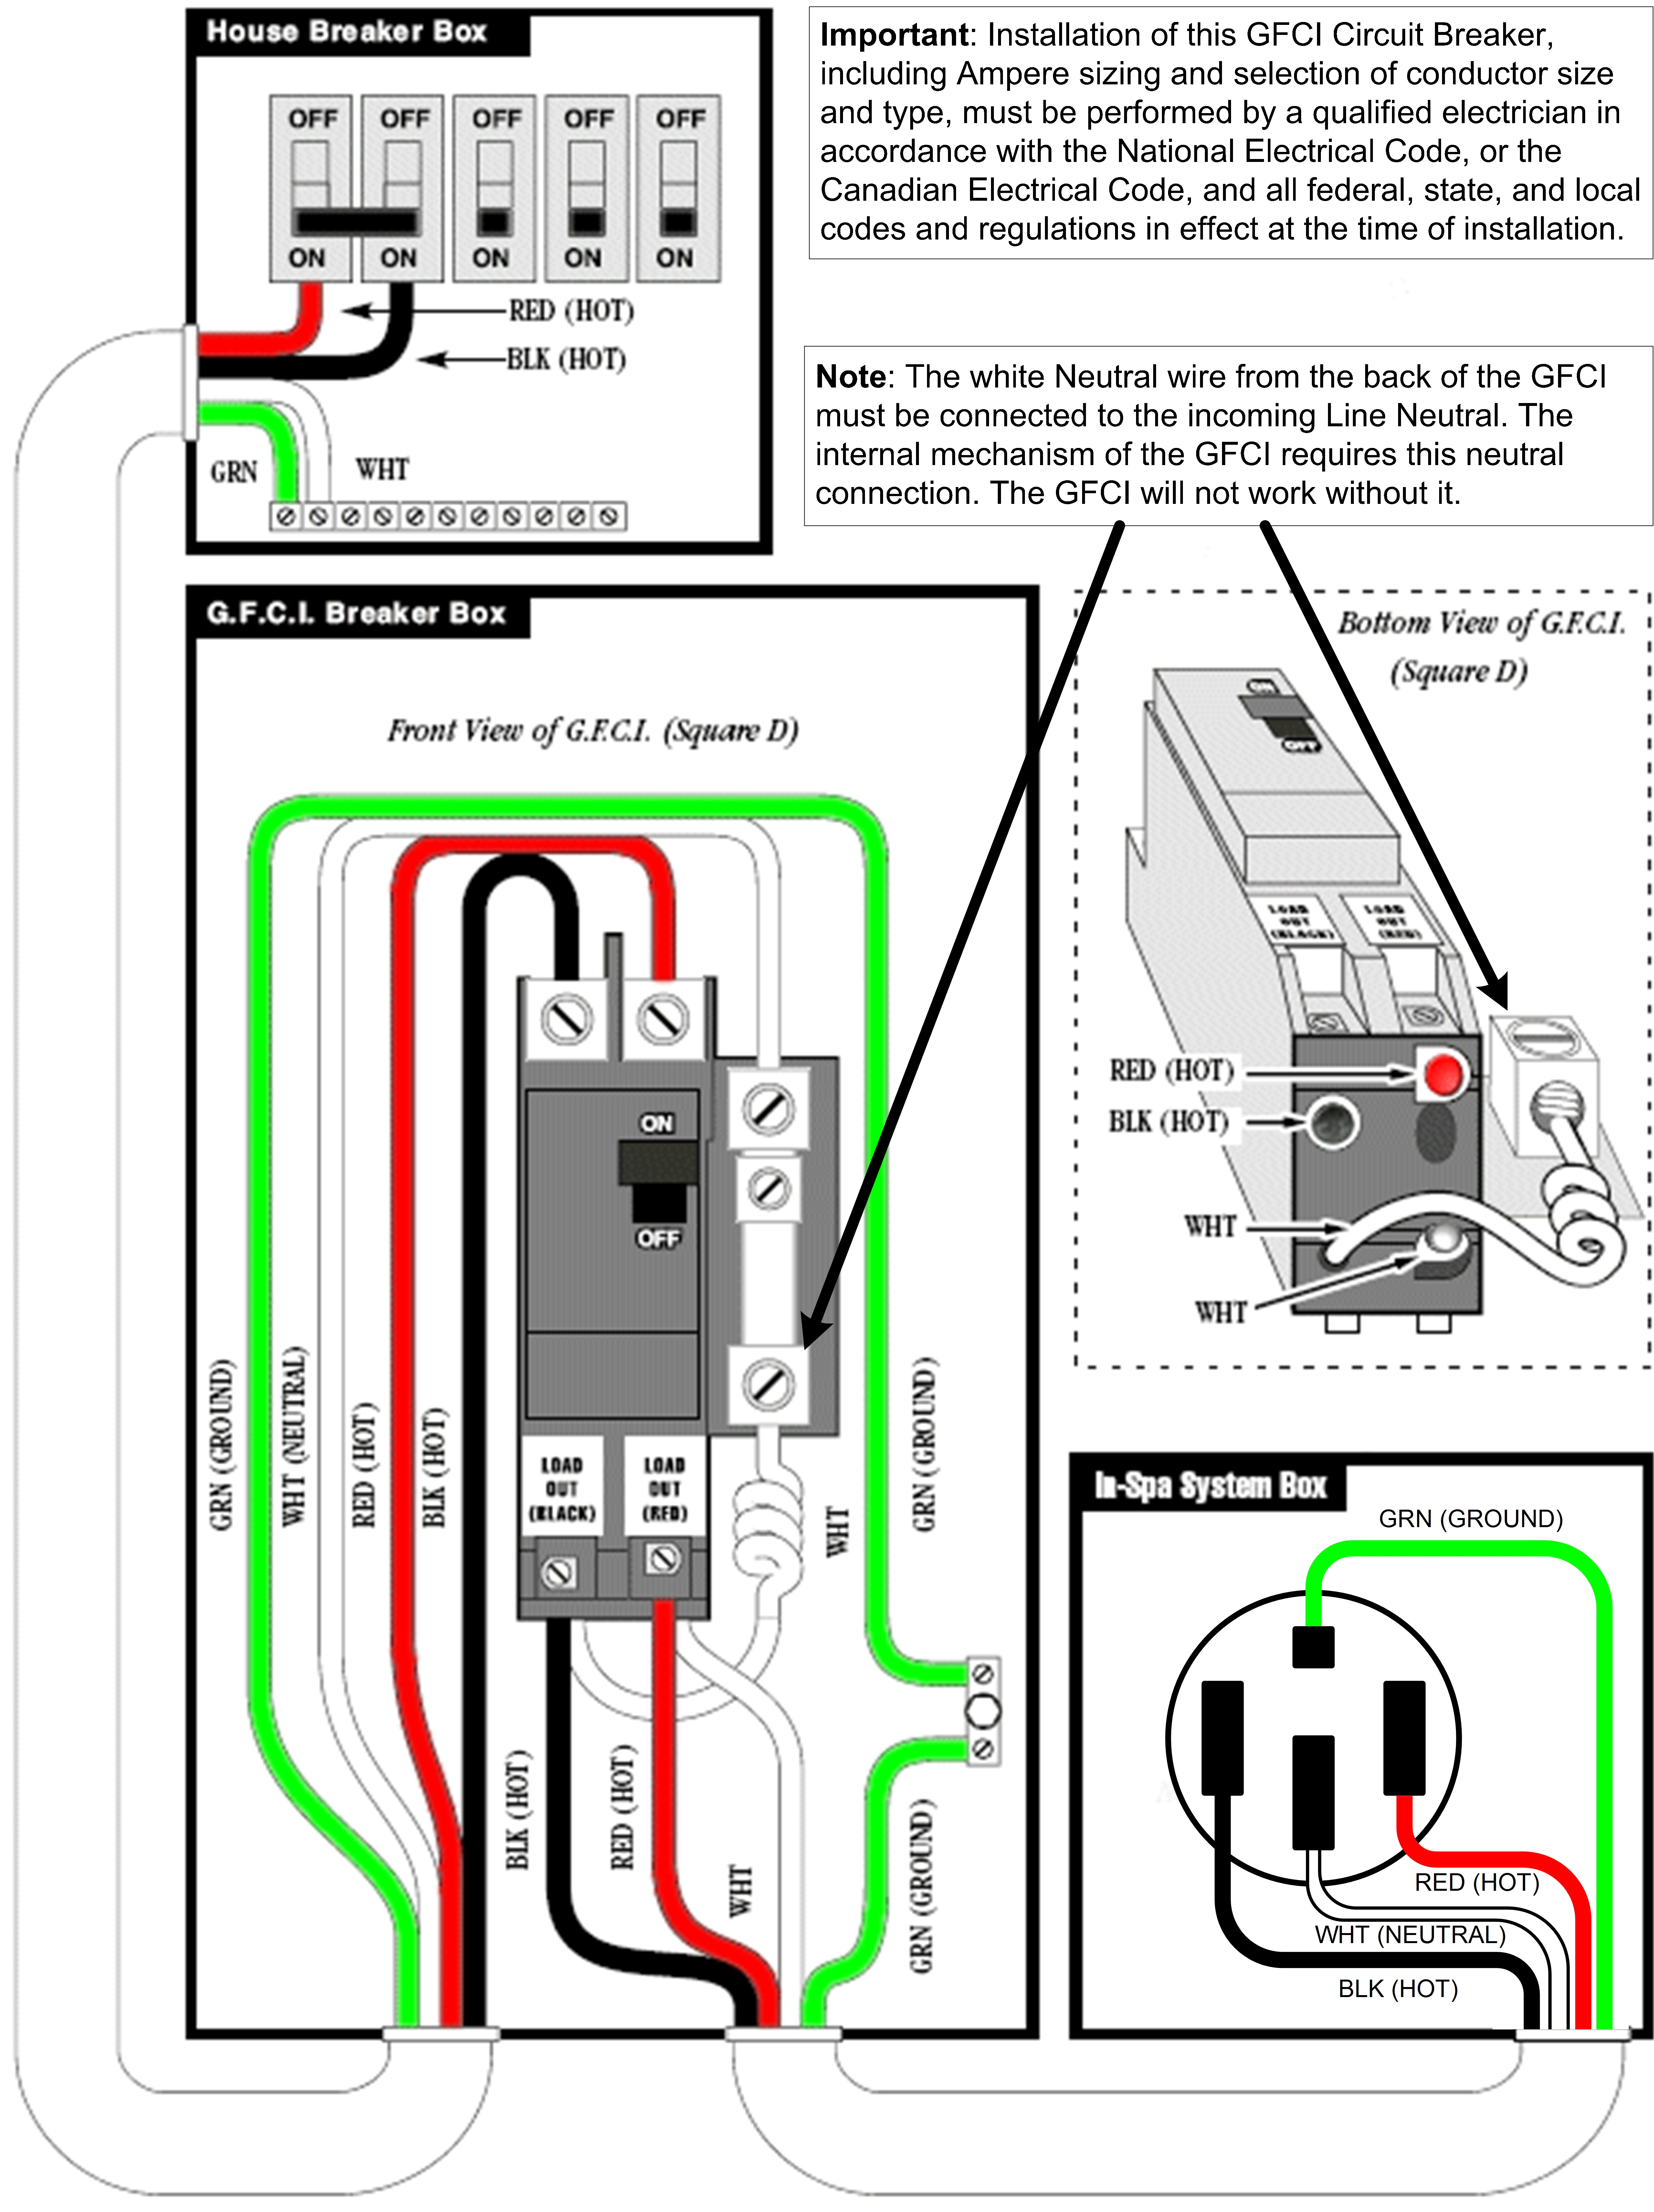 Swimming Pool Electrical Panel Wiring Diagrams | Wiring Diagram - Pool Pump Wiring Diagram